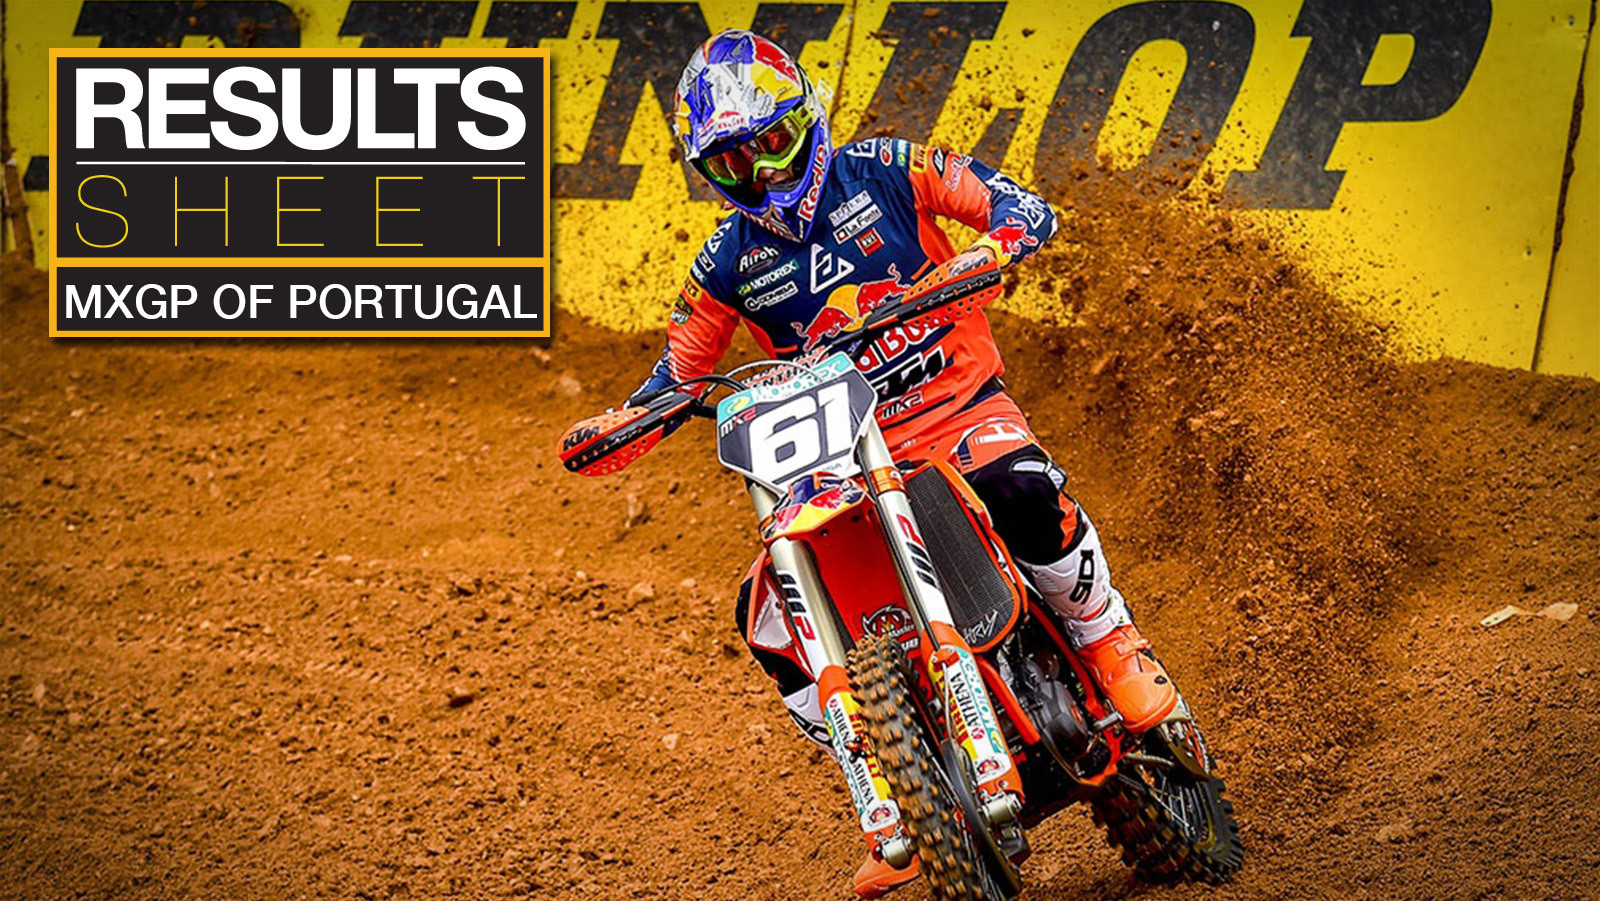 Results Sheet: 2019 MXGP of Portugal